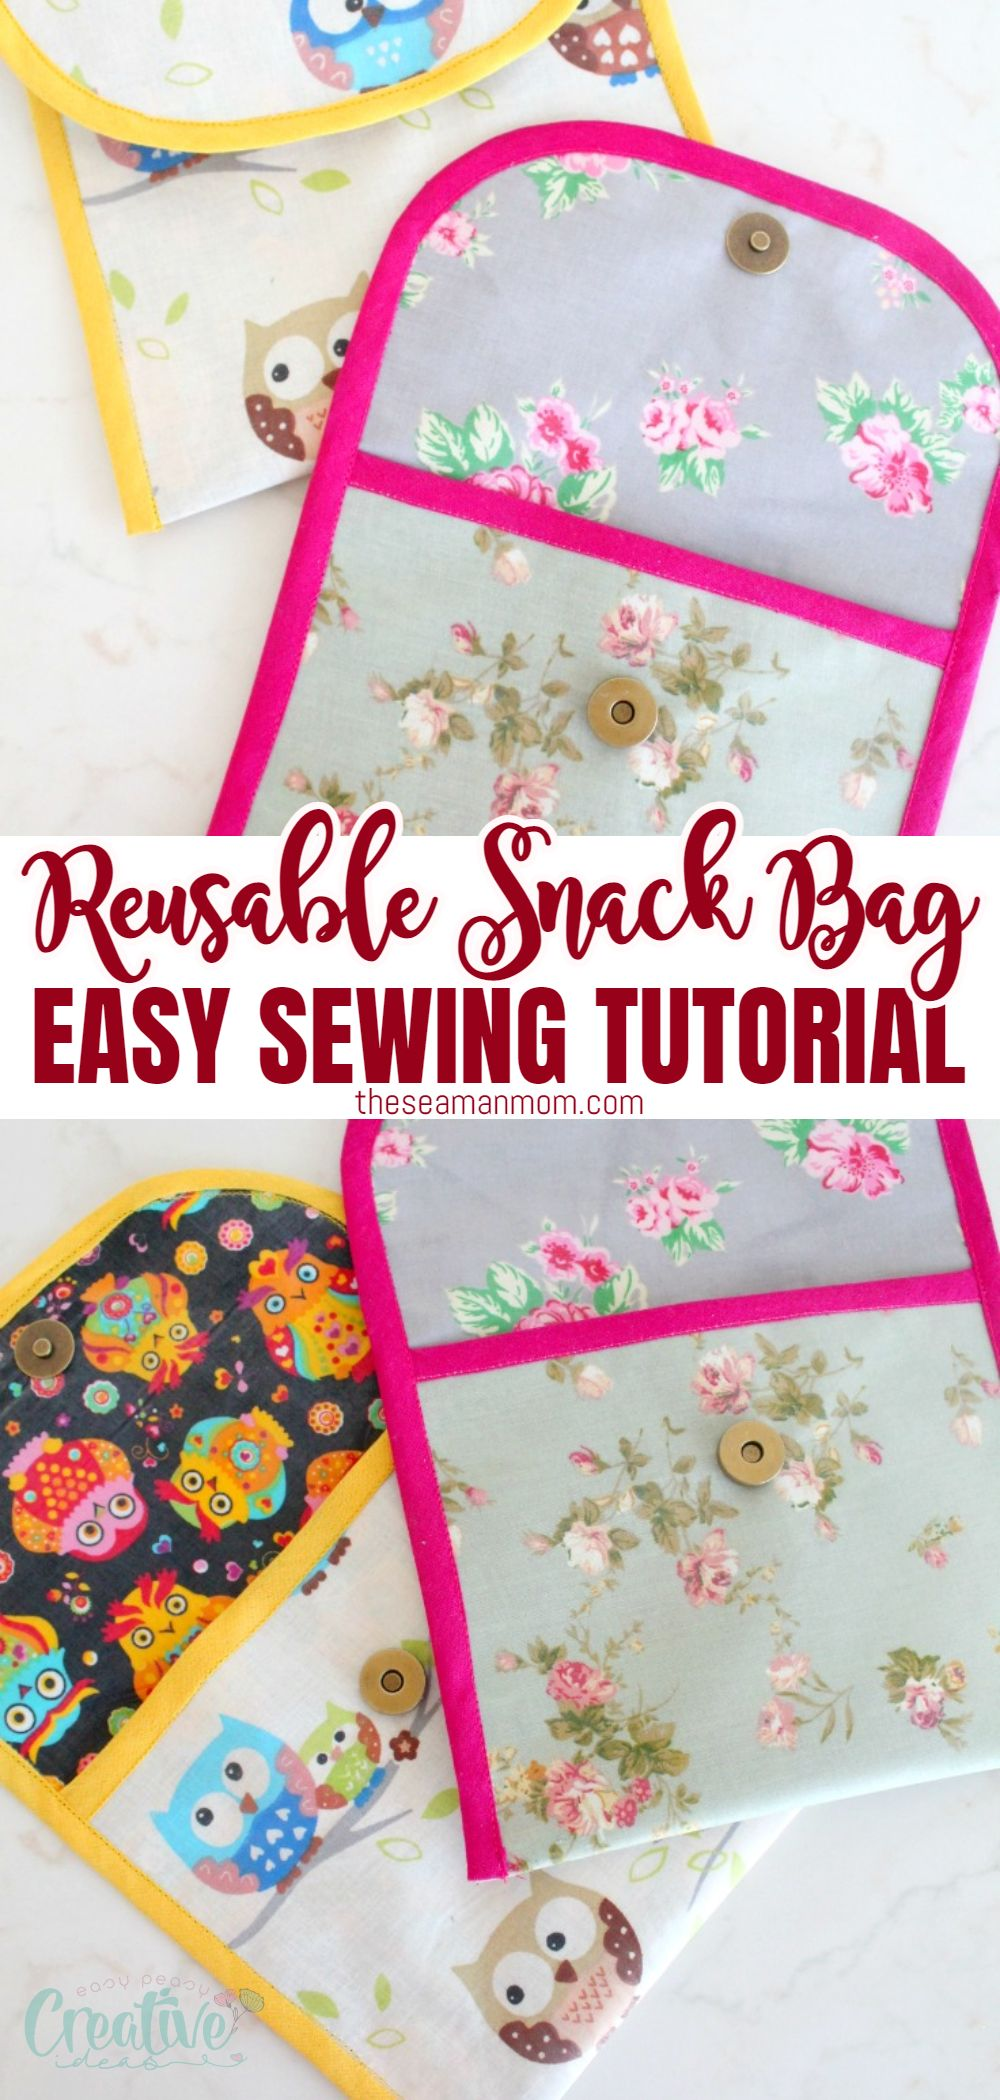 Sewing reusable snack bags is fun, practical and crazy easy! This quick and simple tutorial is for cute DIY reusable snack bags that are waterproof, reusable and food safe! Great for snacks or breakfast/lunch on the go! via @petroneagu